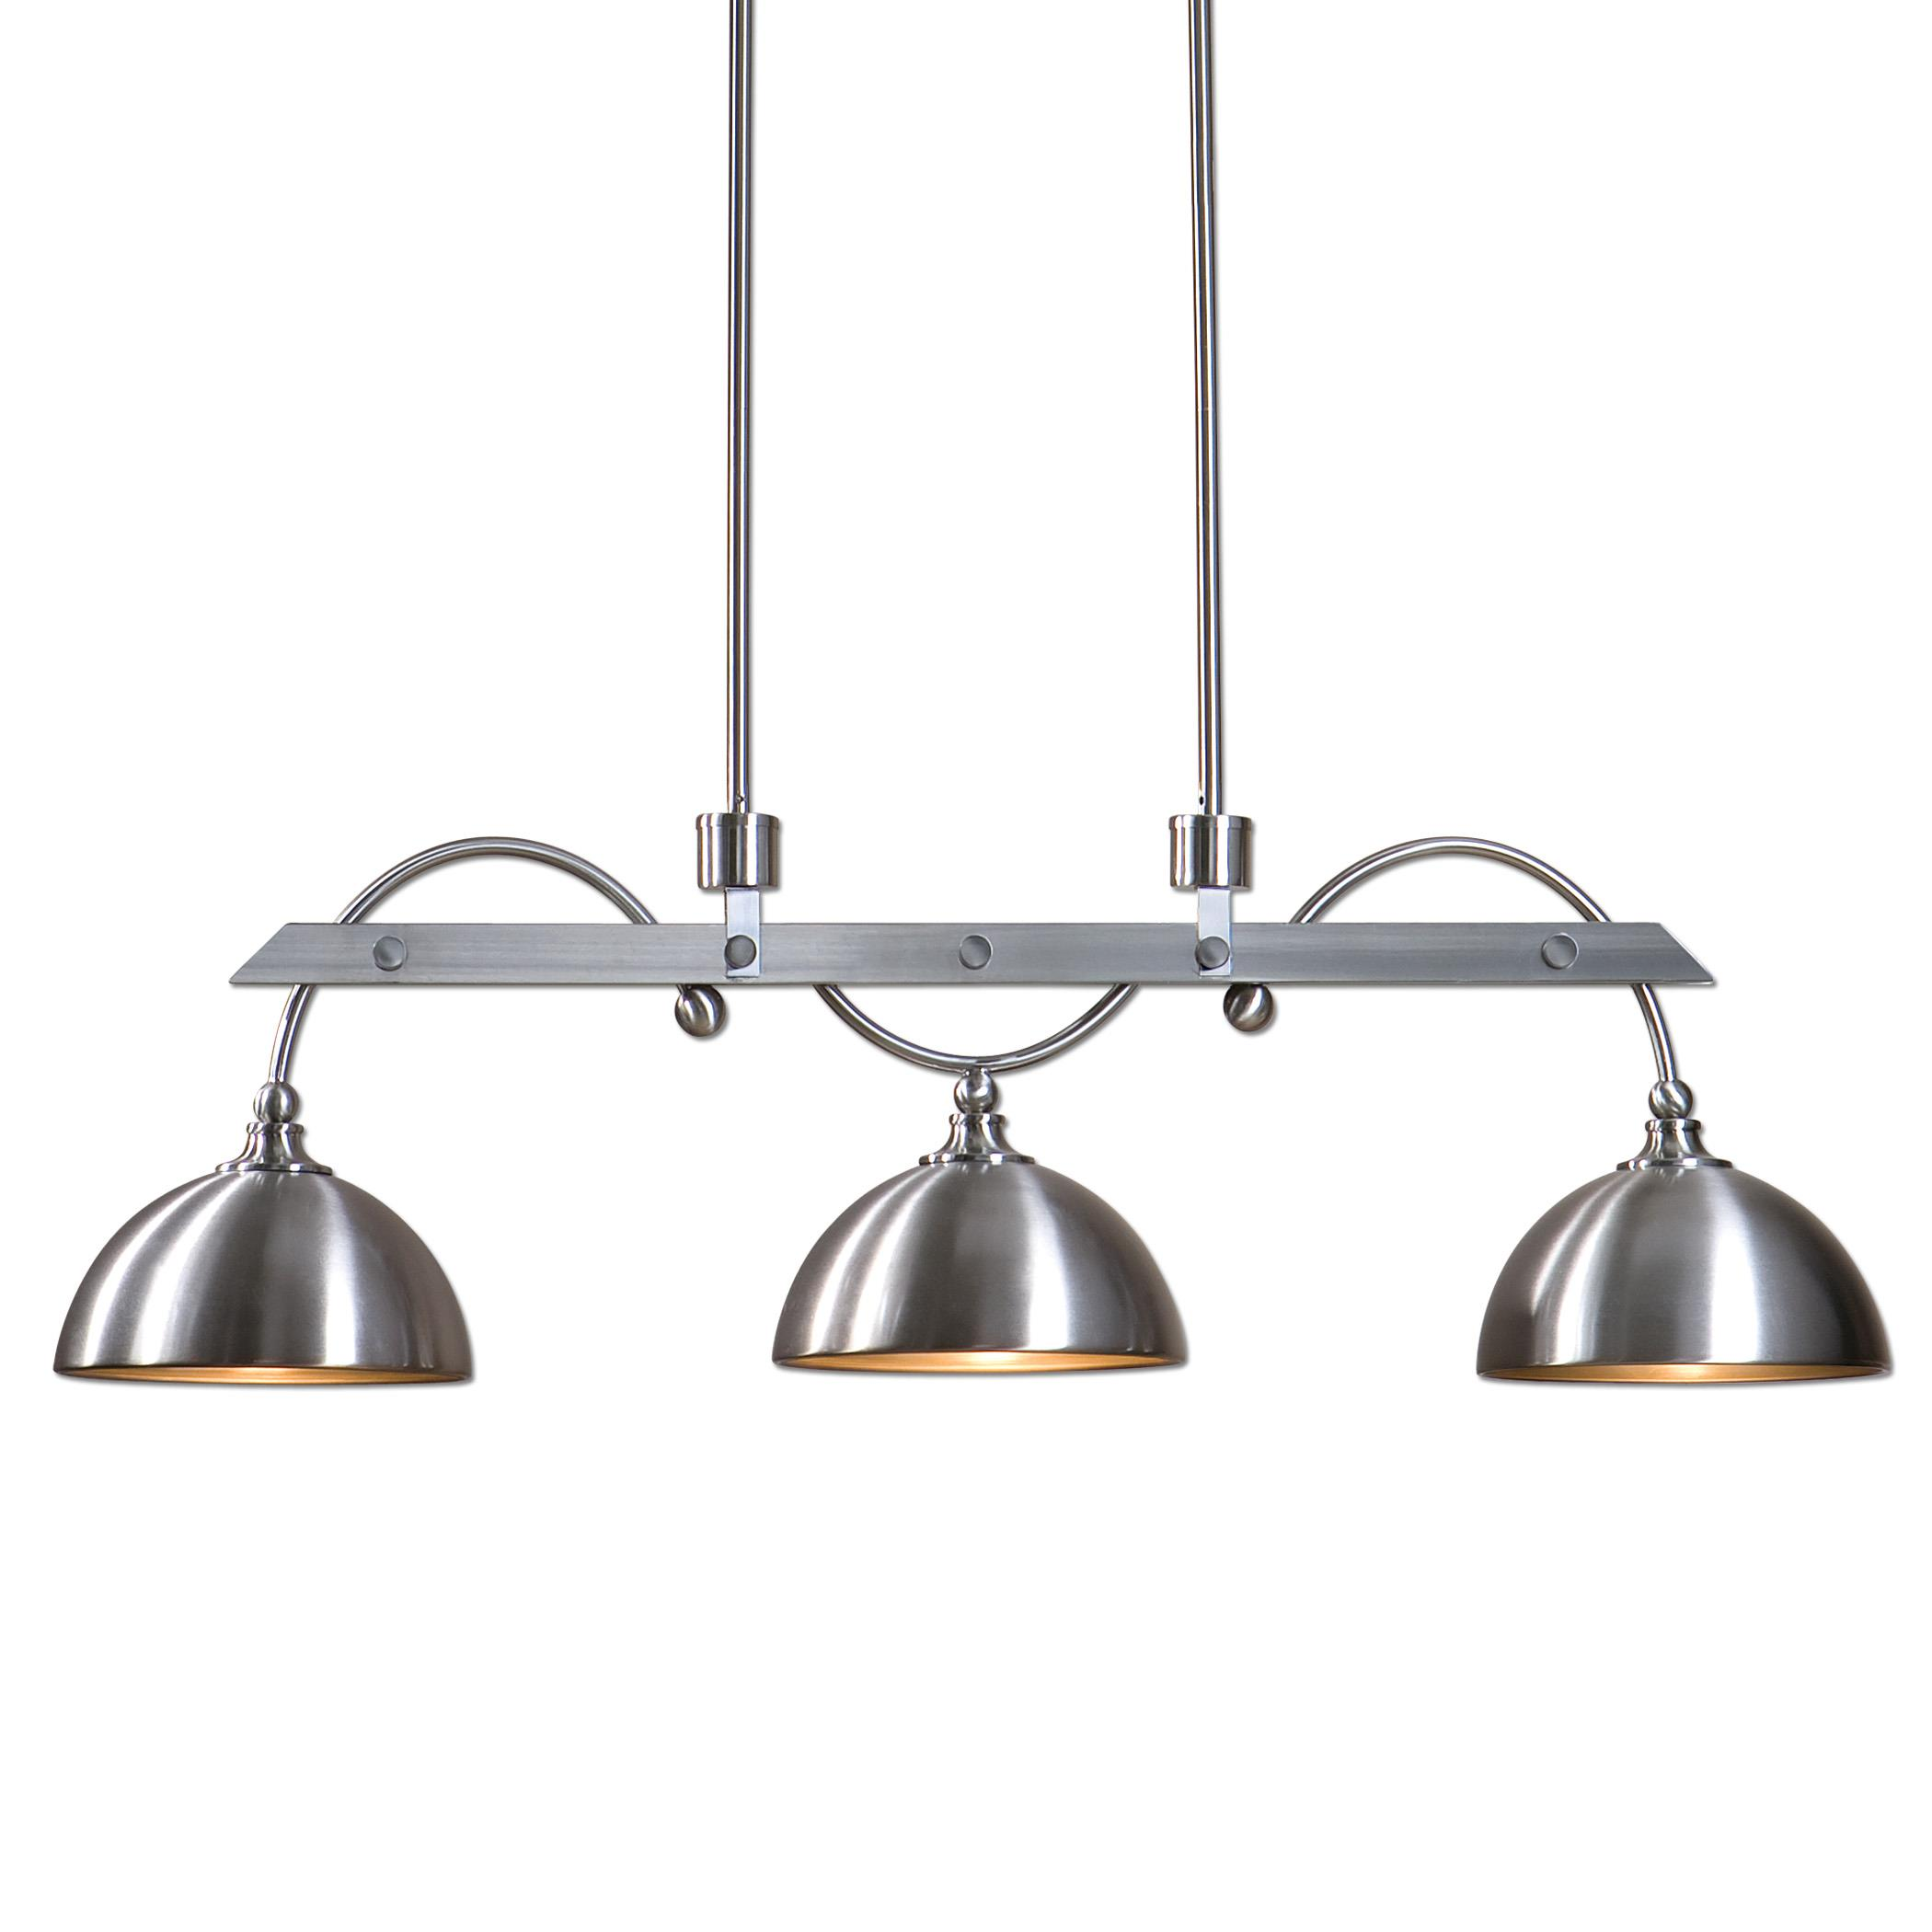 Uttermost Lighting Fixtures Malcolm 3 Light Nickel Industrial Island Lig - Item Number: 21265